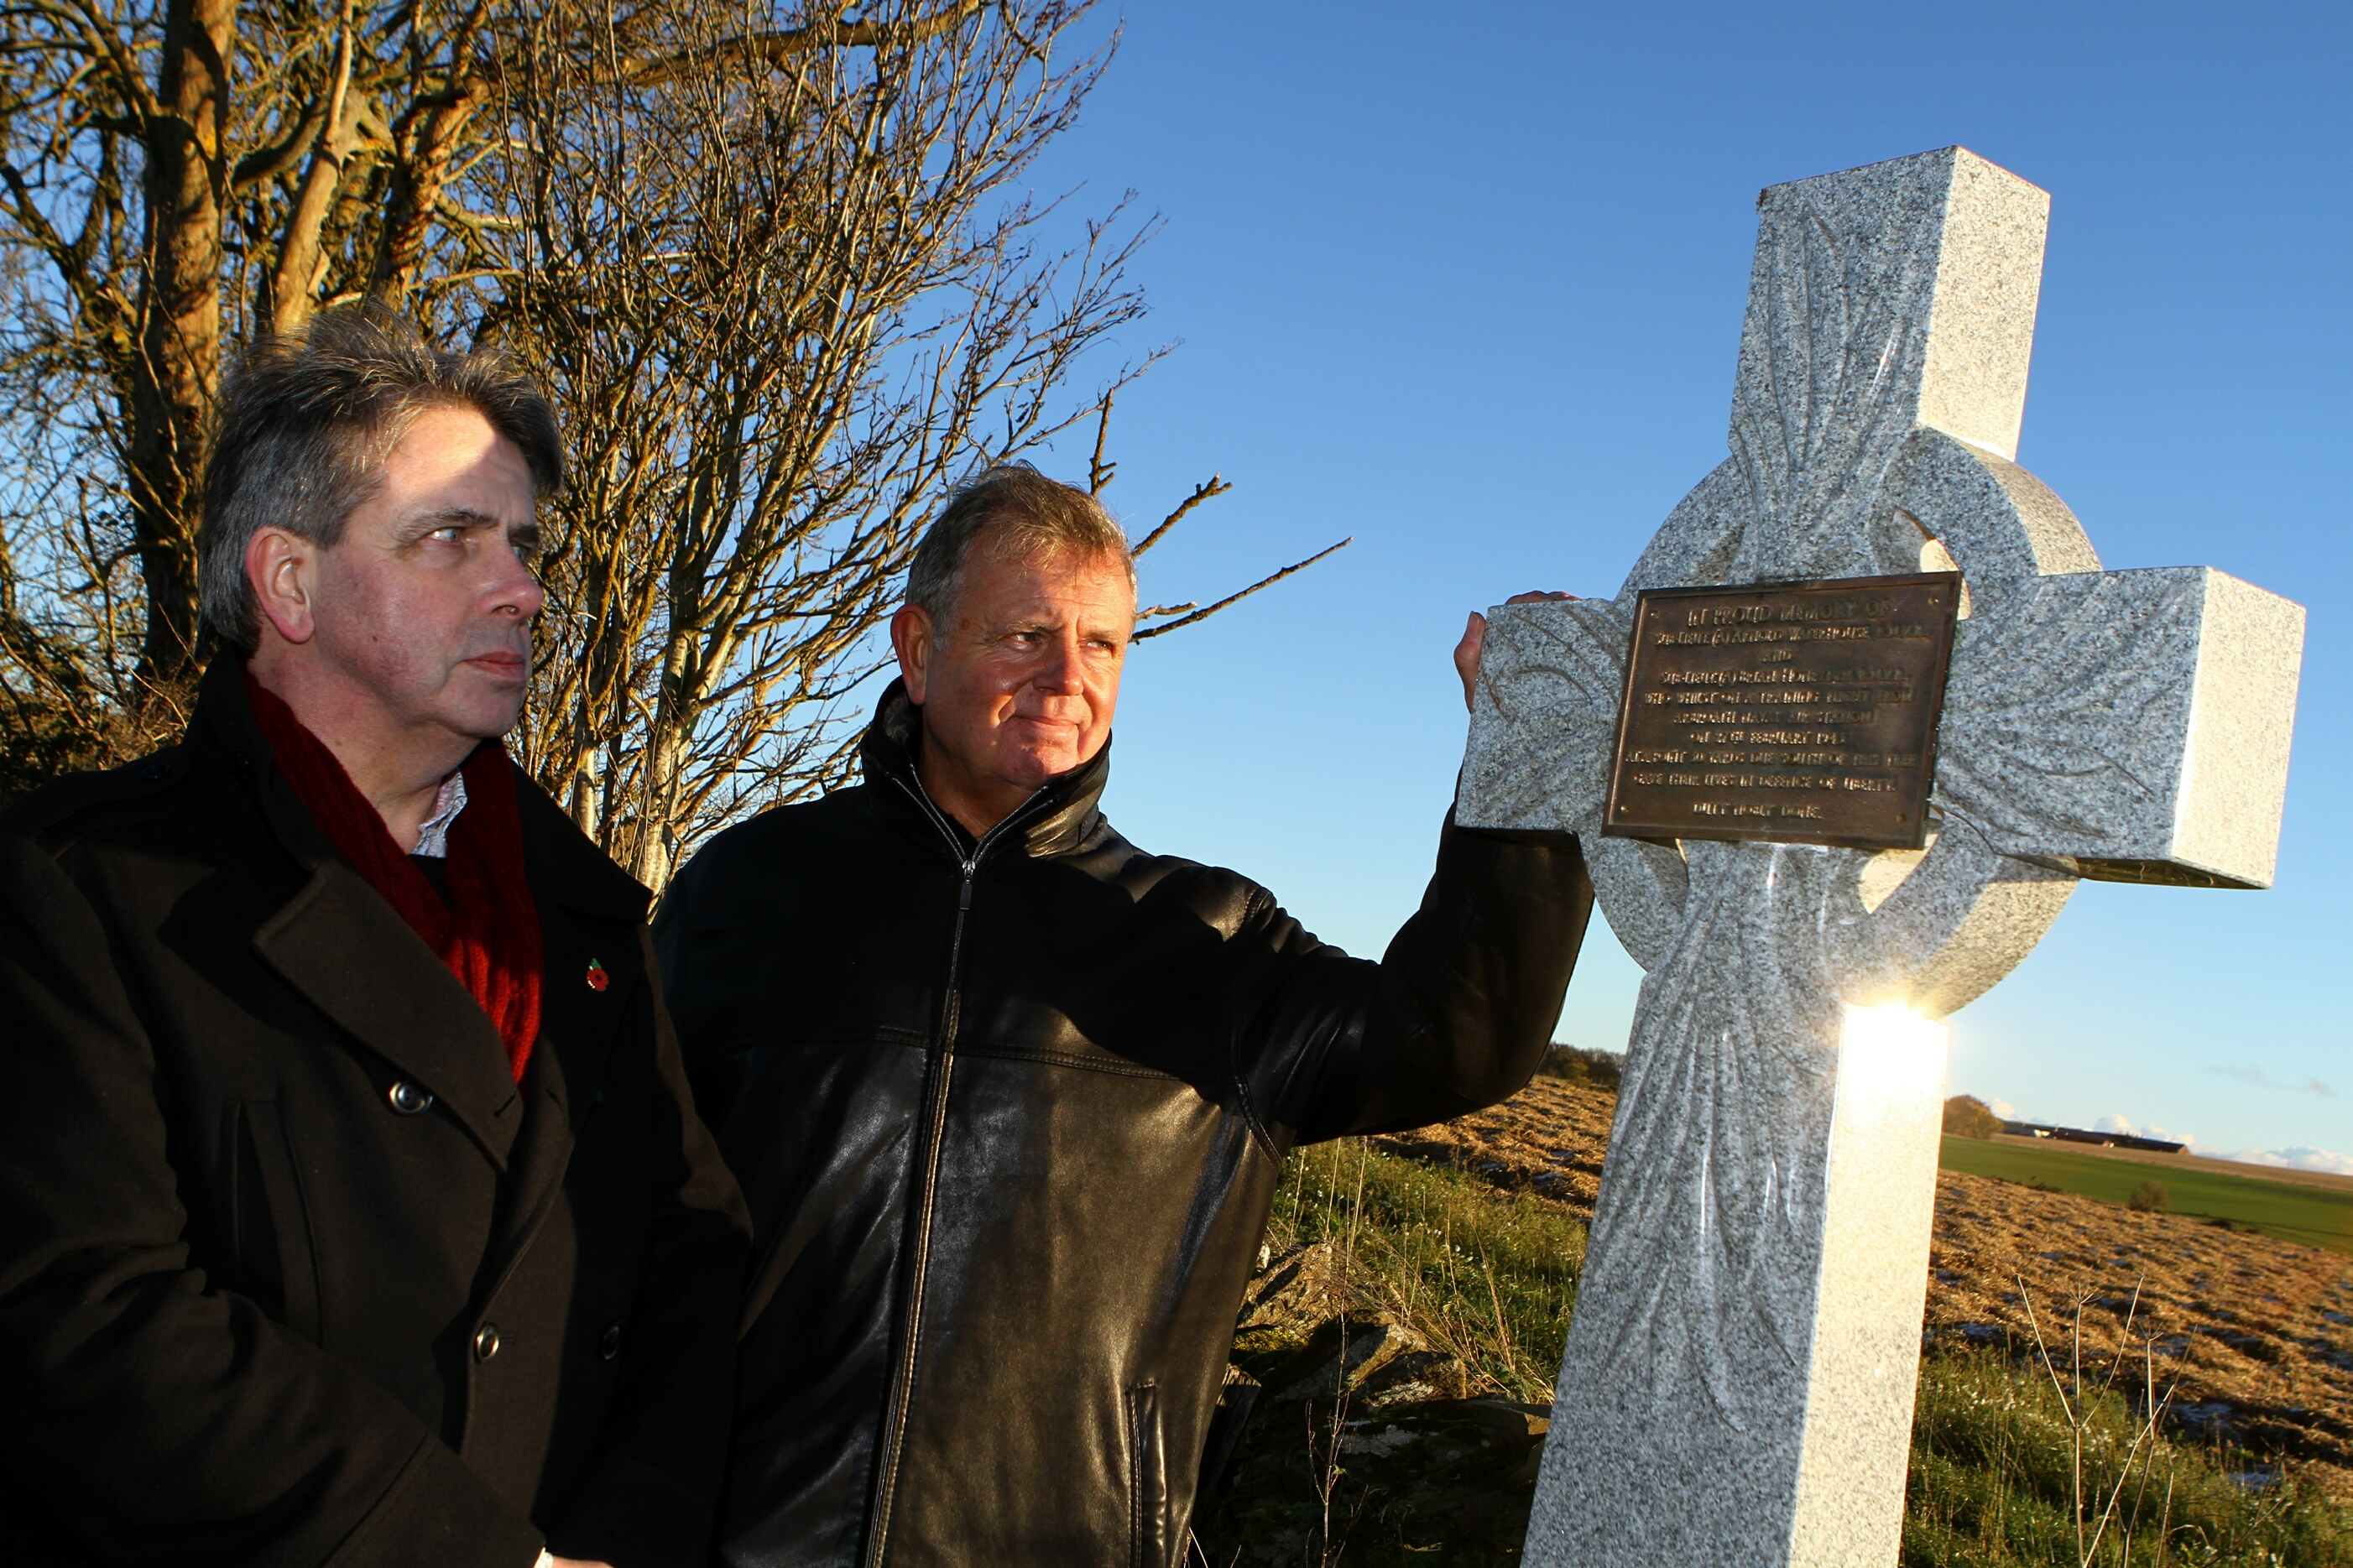 Keith and Andrew Waterhouse at the gask Farm ceremony